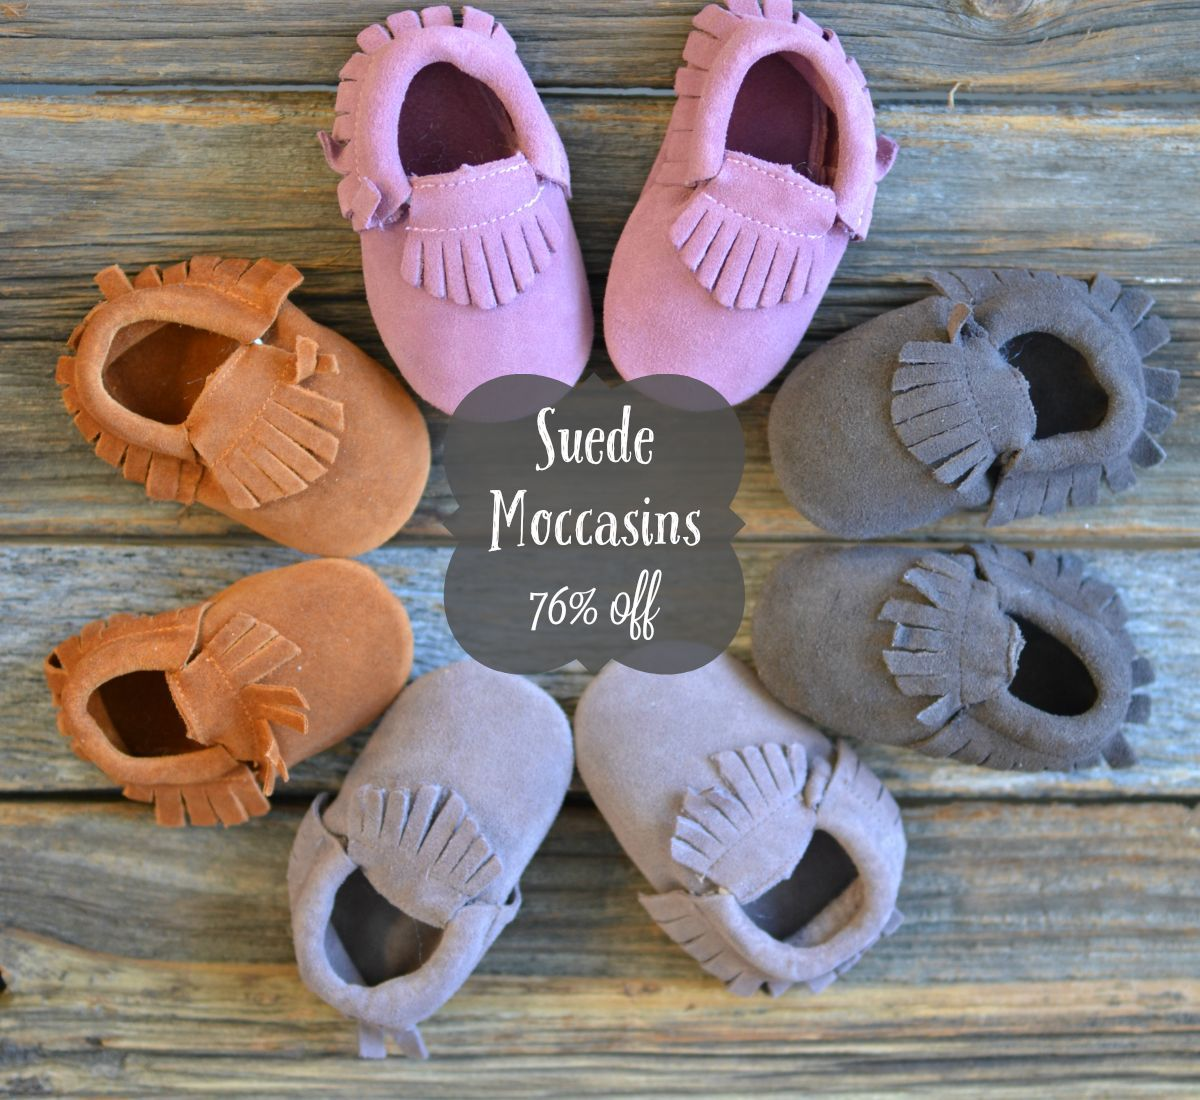 Suede Moccasins: 76% off retail through 10-27-15!